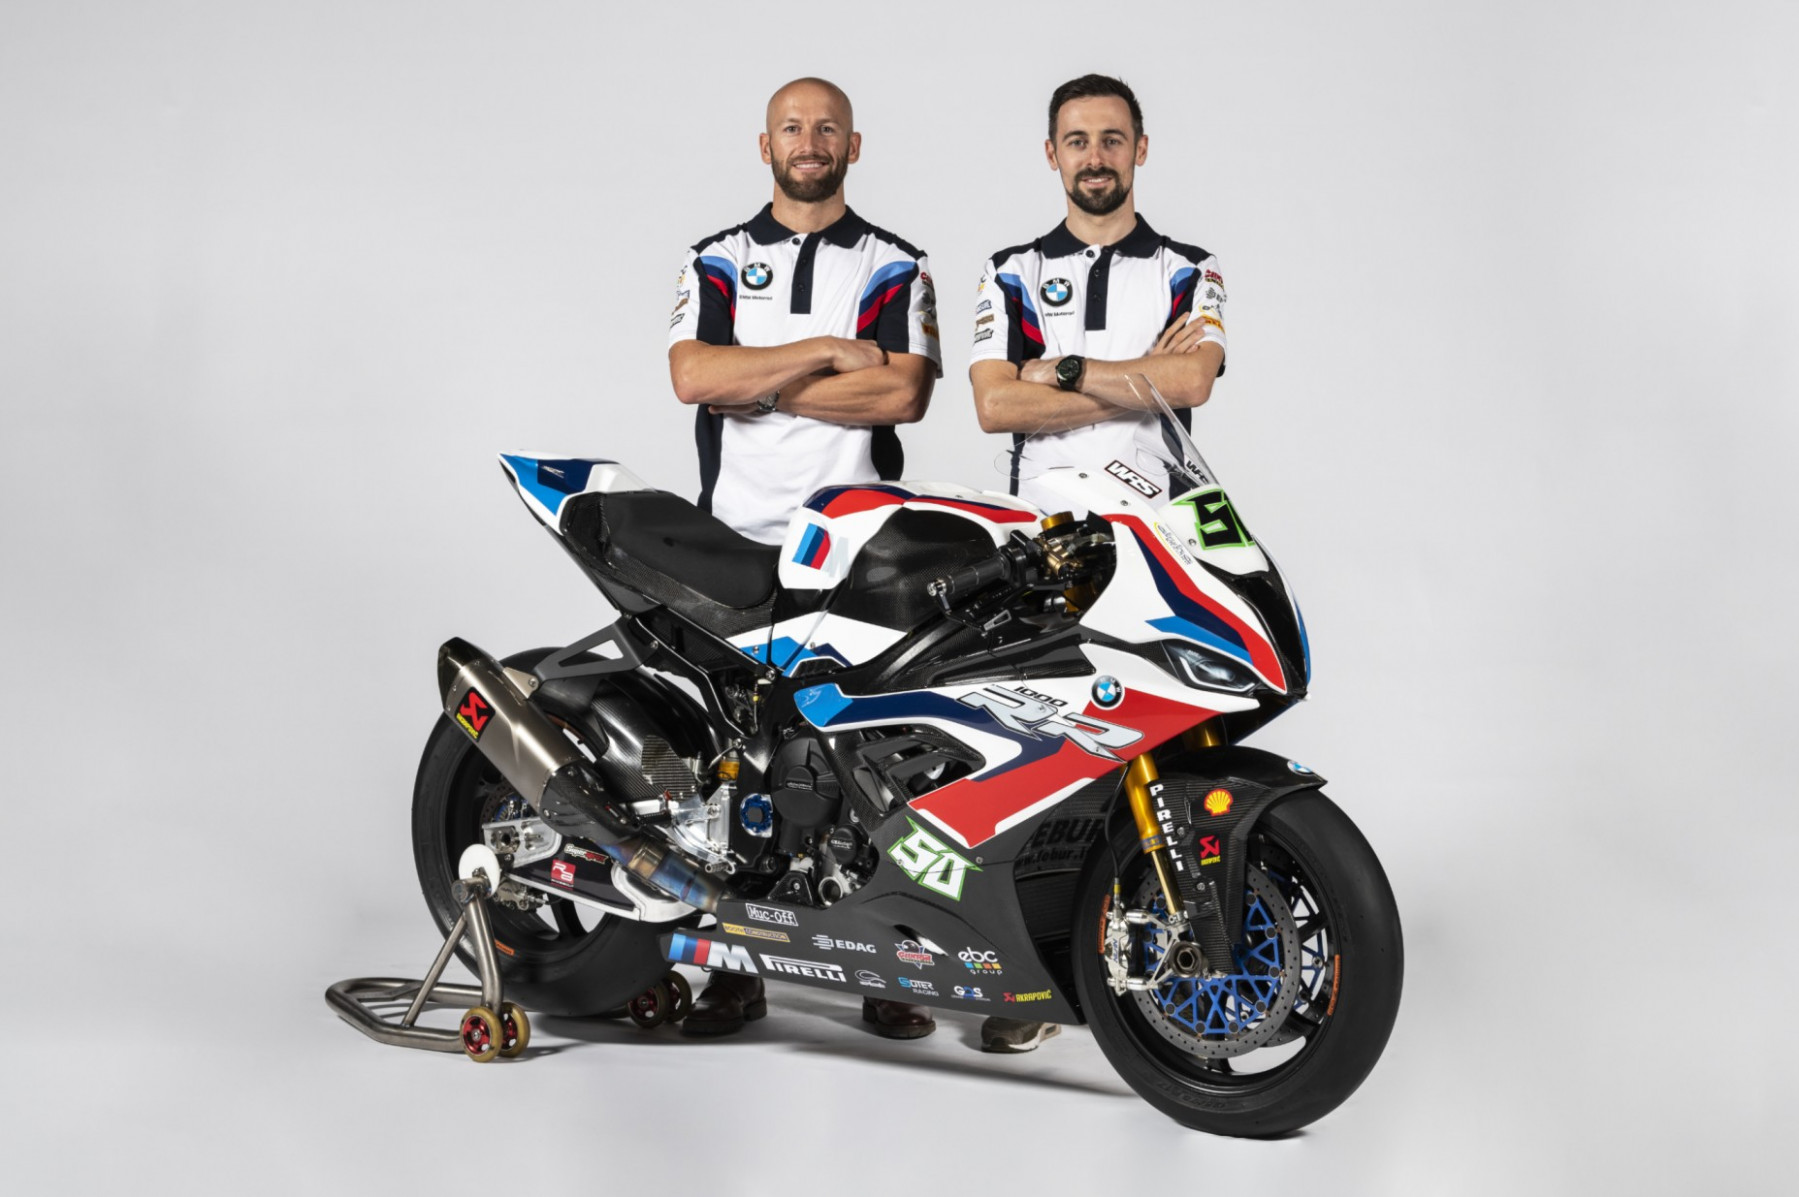 Tom Sykes and Eugene Laverty present the new look BMW S 8 RR ..